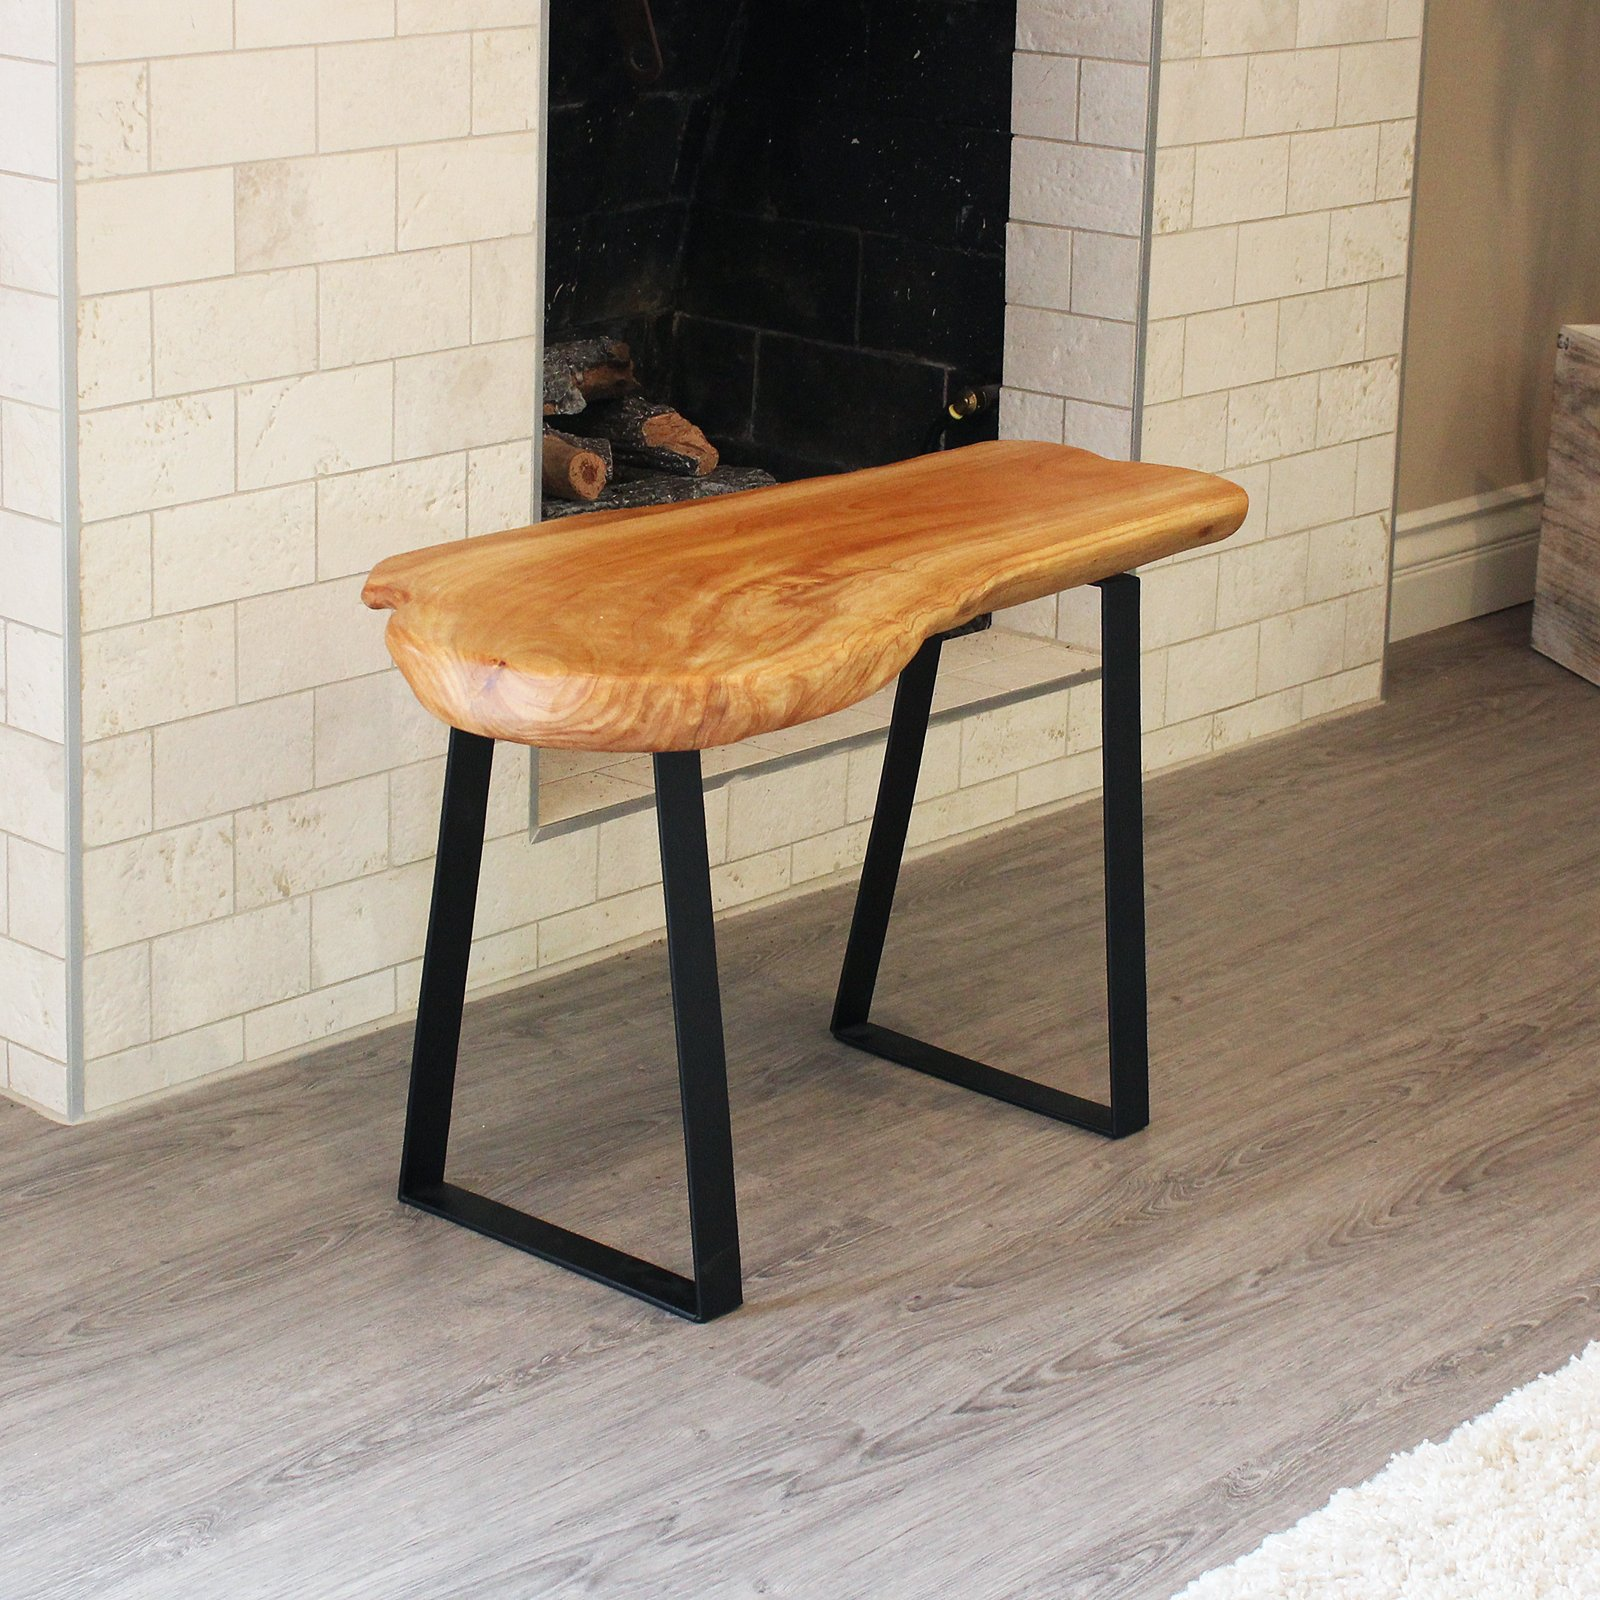 WELLAND Natural Edge Solid Wood Bench with Metal Legs, Cedar, 28'' Long by WELLAND (Image #3)